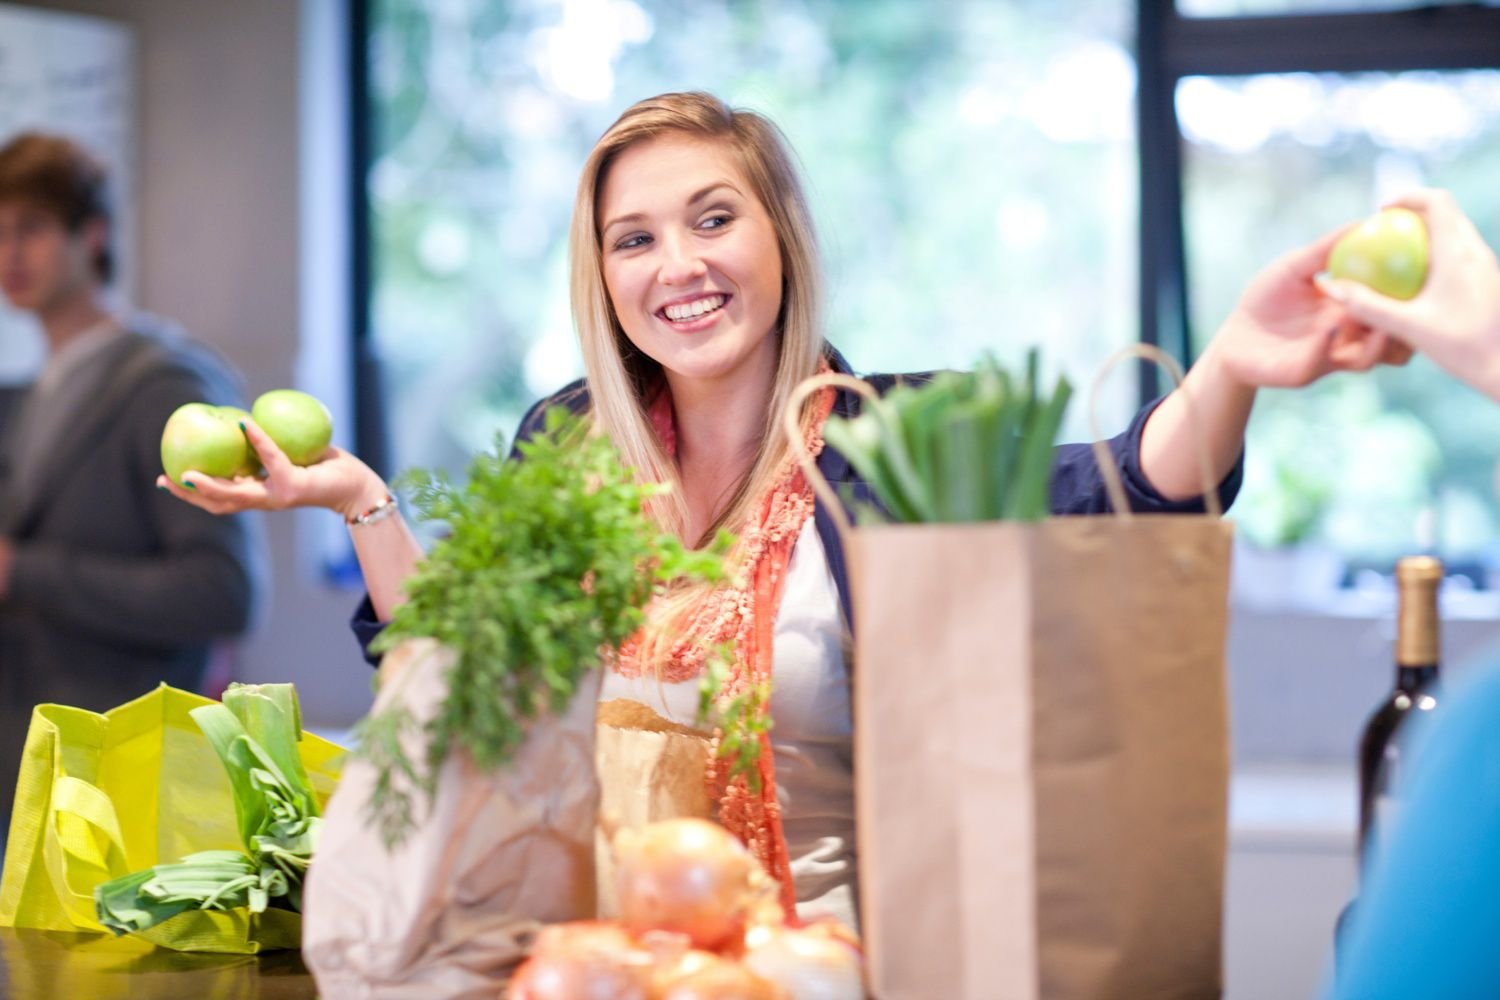 A Woman Holding Fruit in Both Hands at Grocery Store